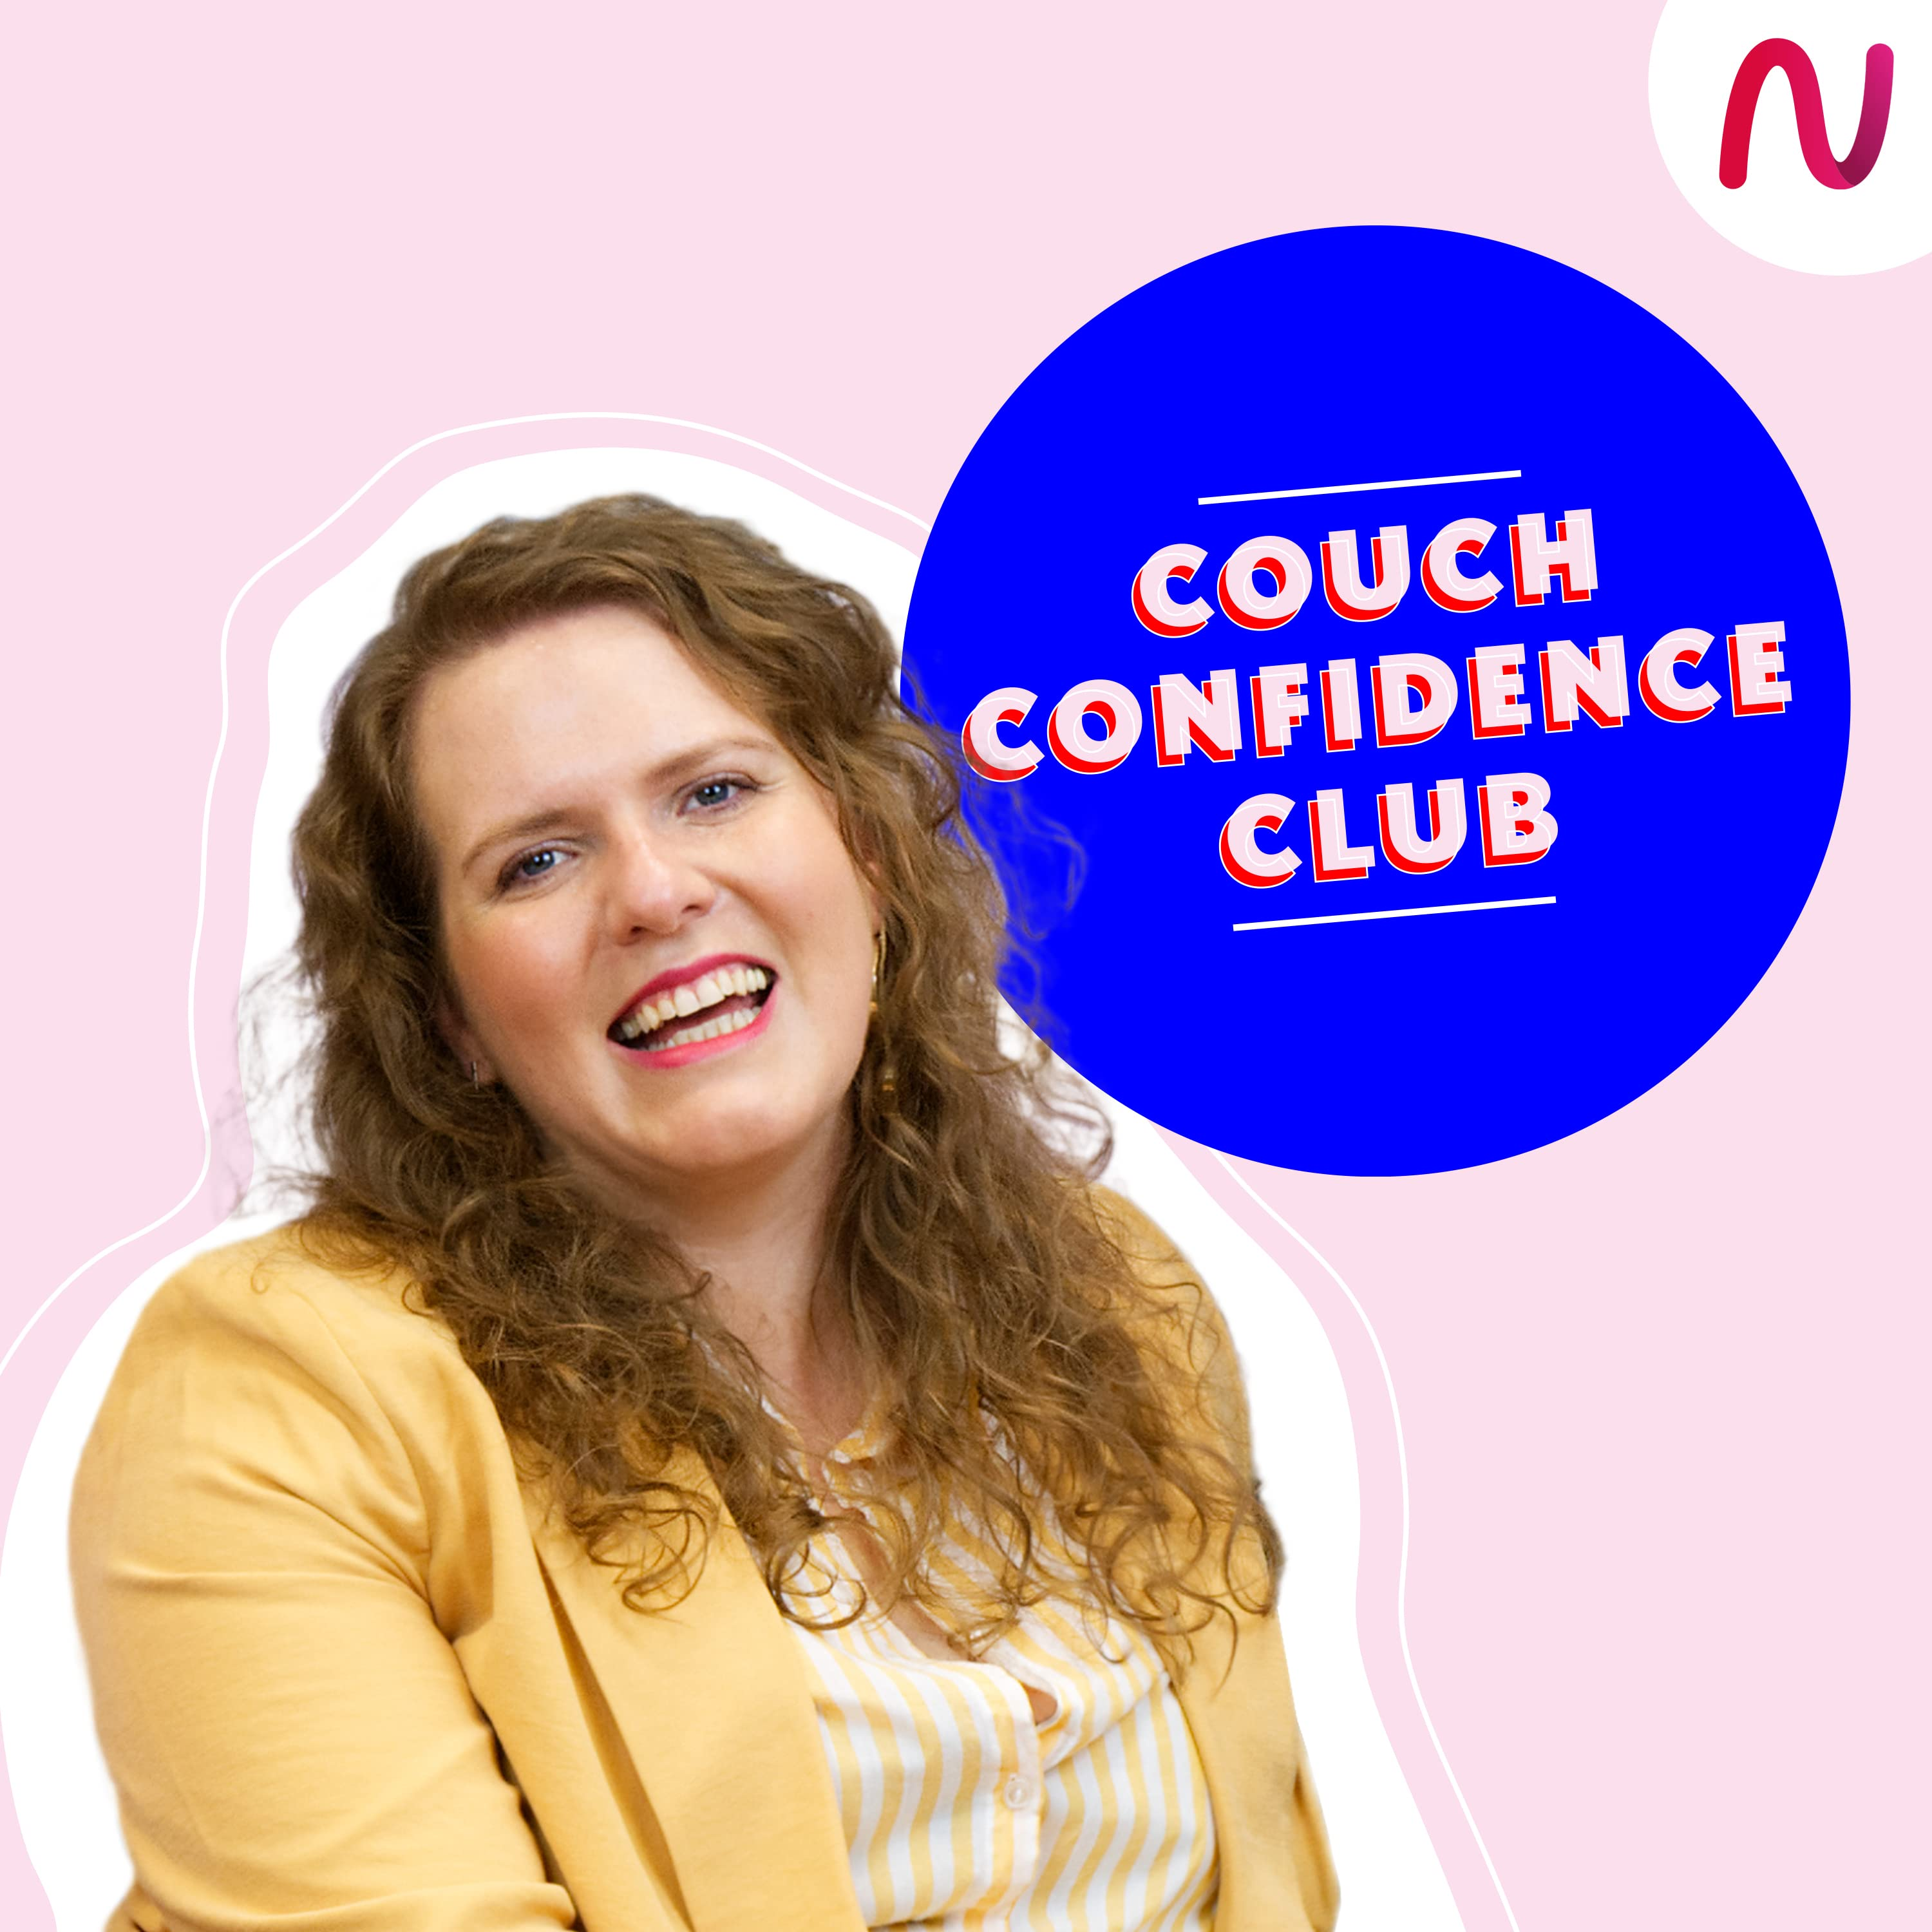 COUCH CONFIDENCE CLUB